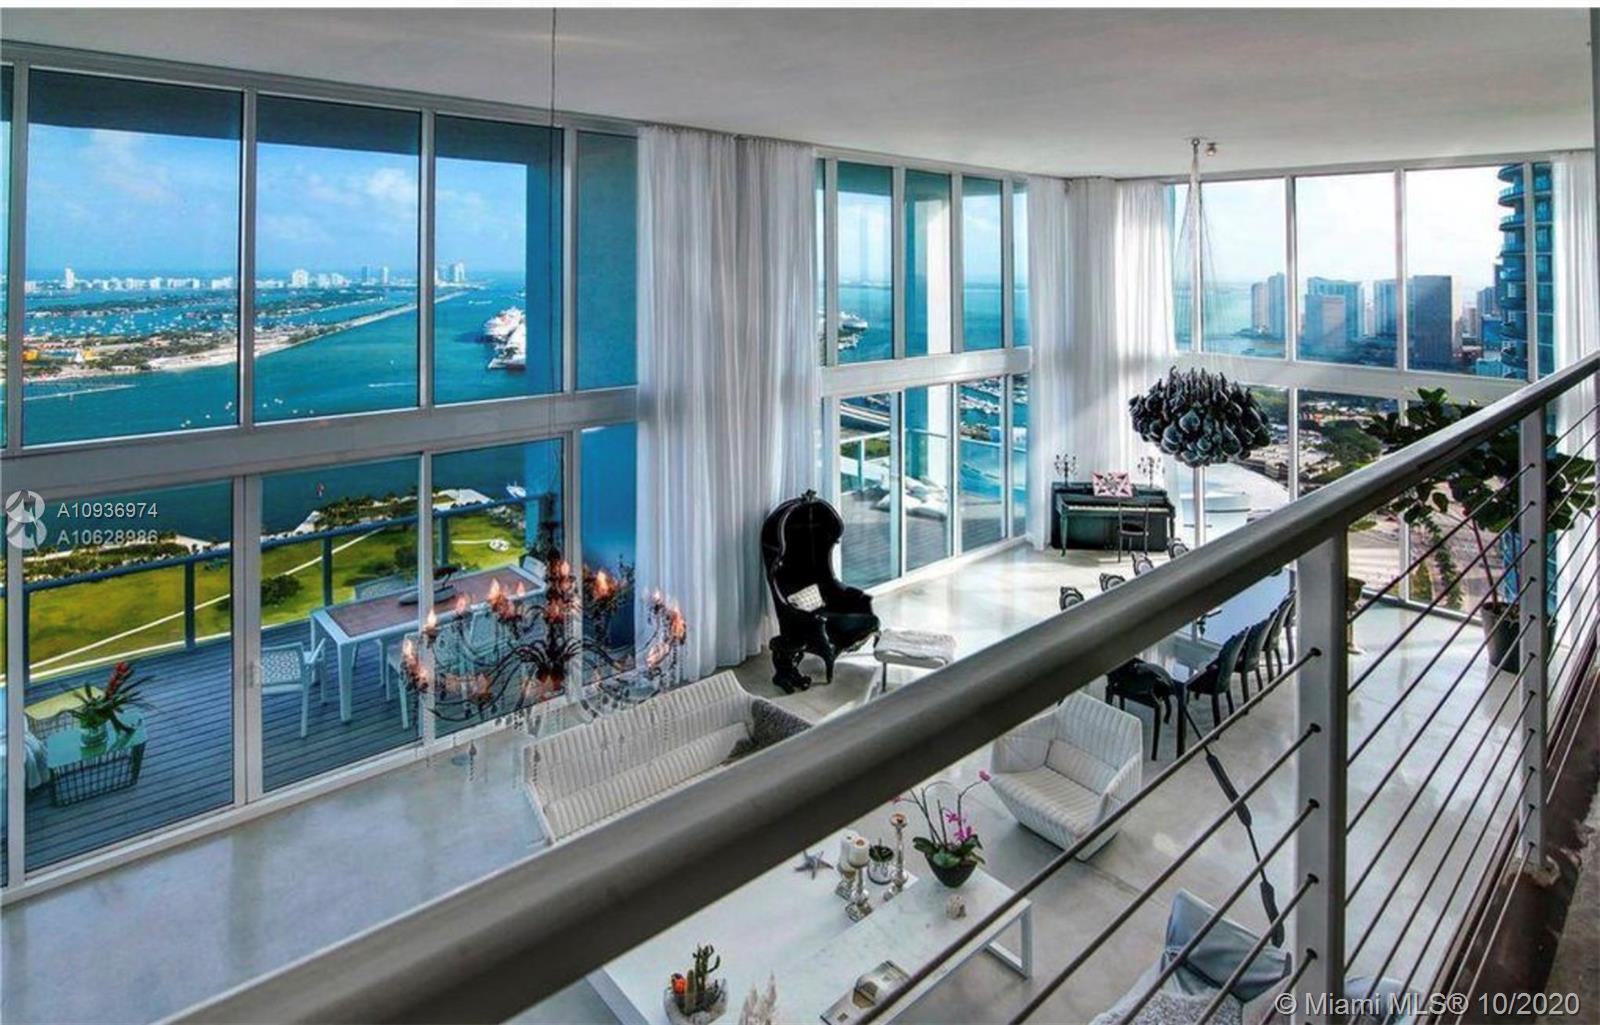 One of a kind 3-level Penthouse. Featuring 24- ft ceilings, private rooftop, plunge pool + 360° pano